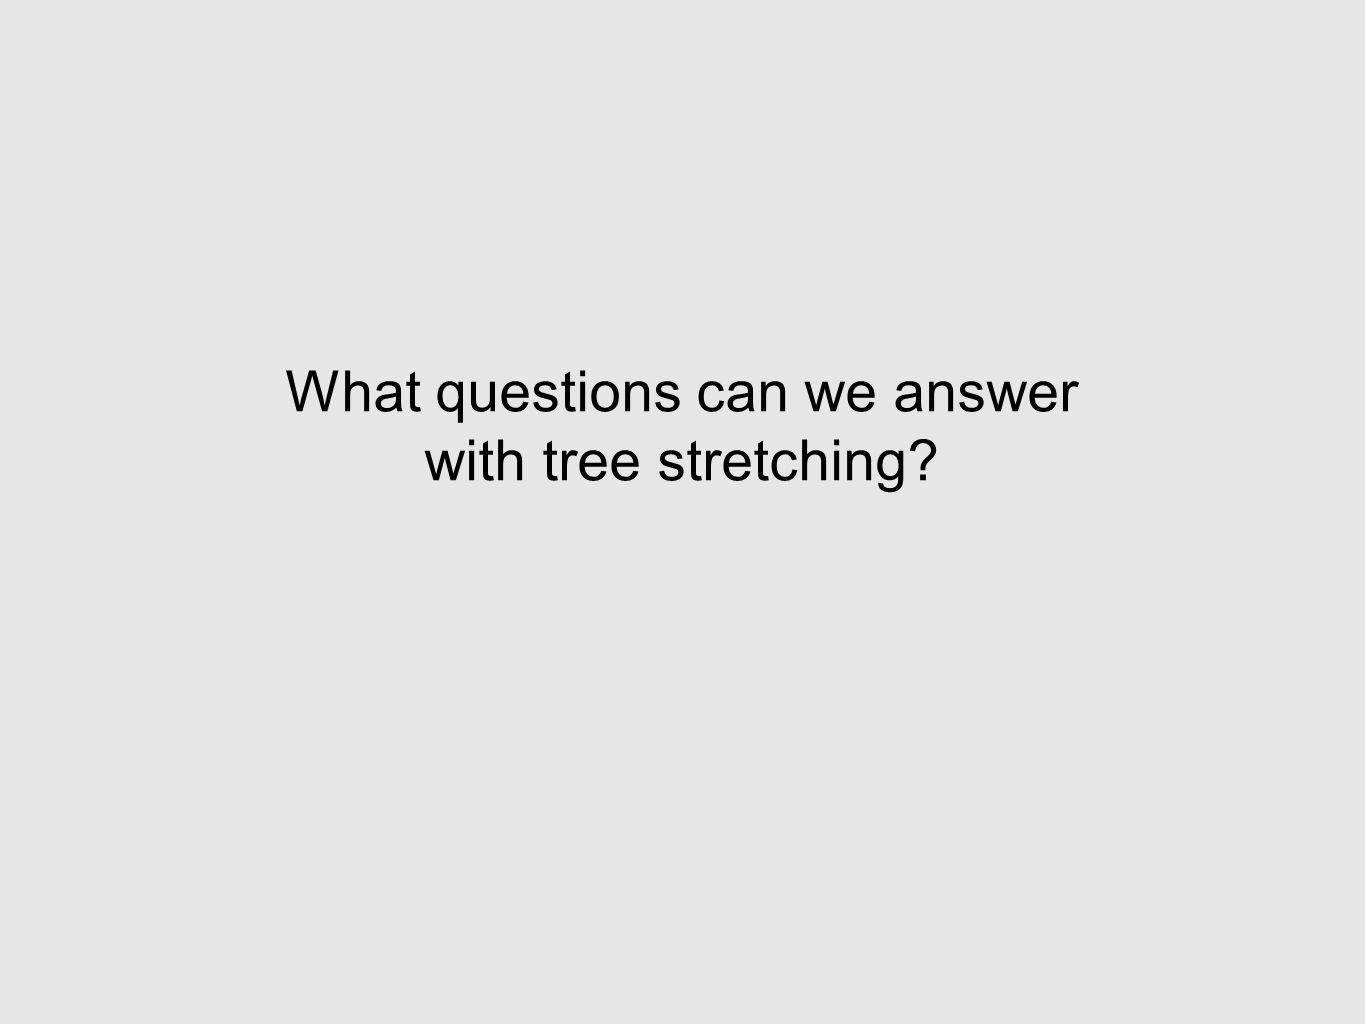 What questions can we answer with tree stretching?